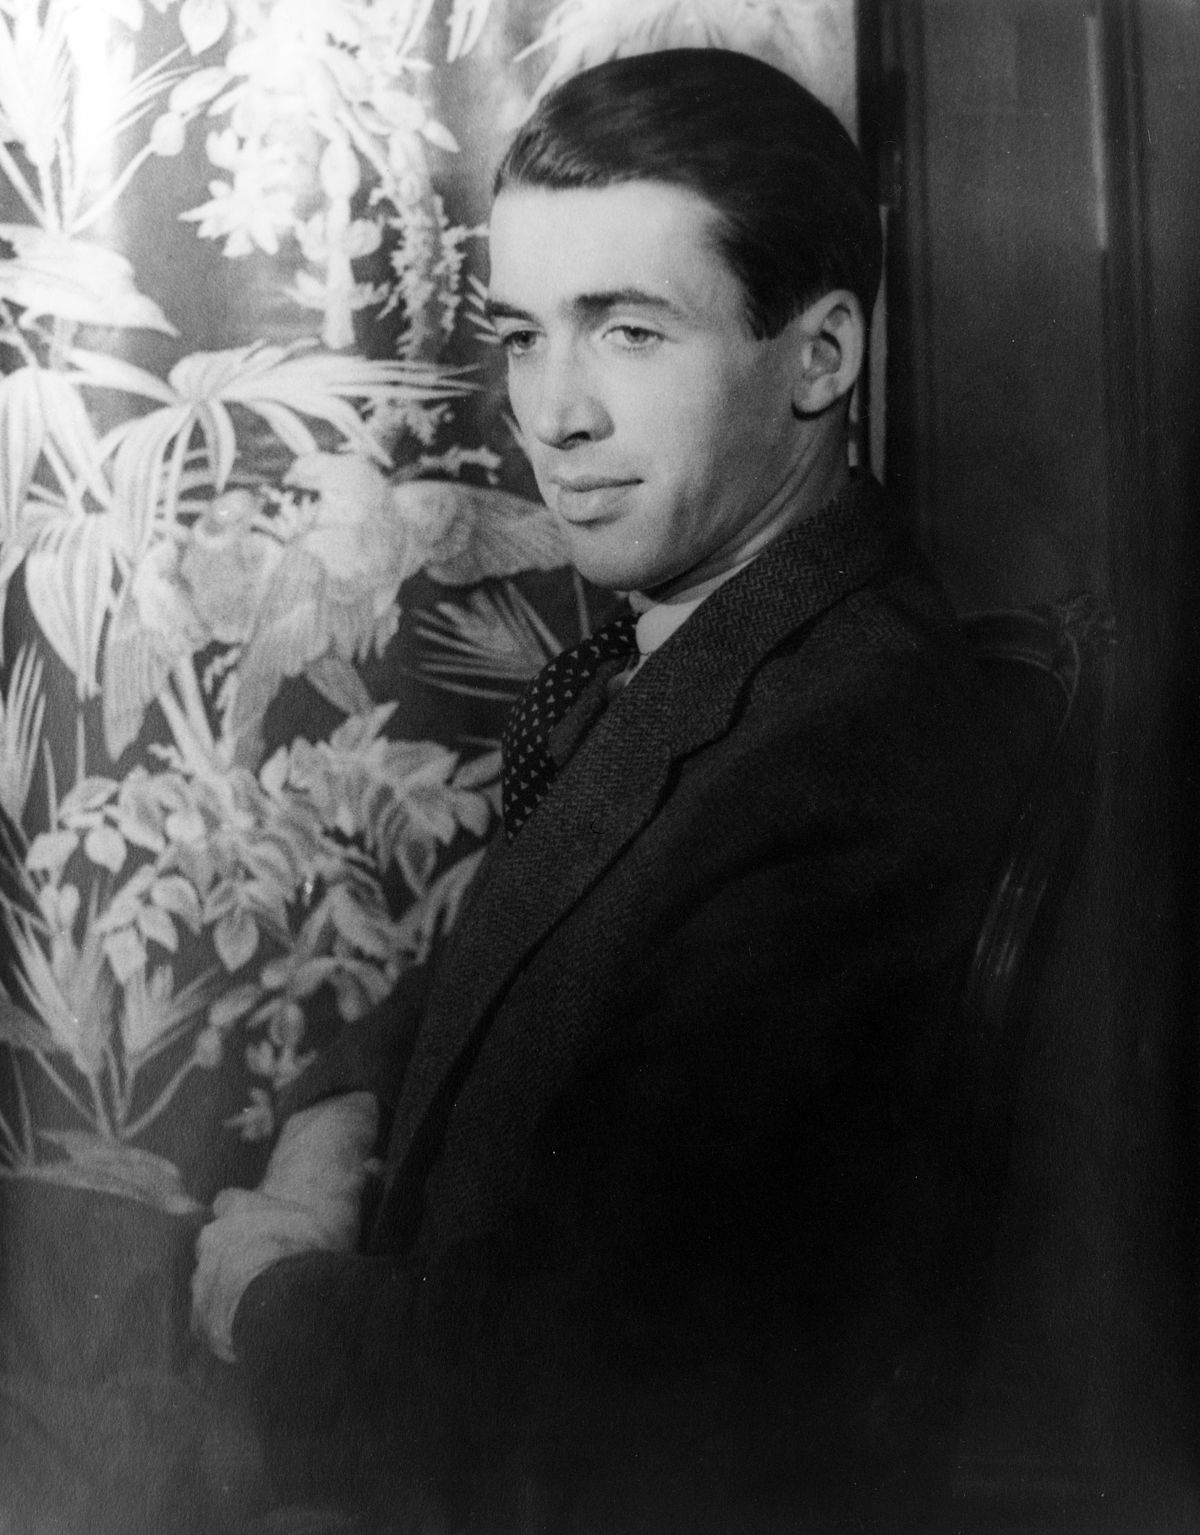 James Stewart filmography - Wikipedia